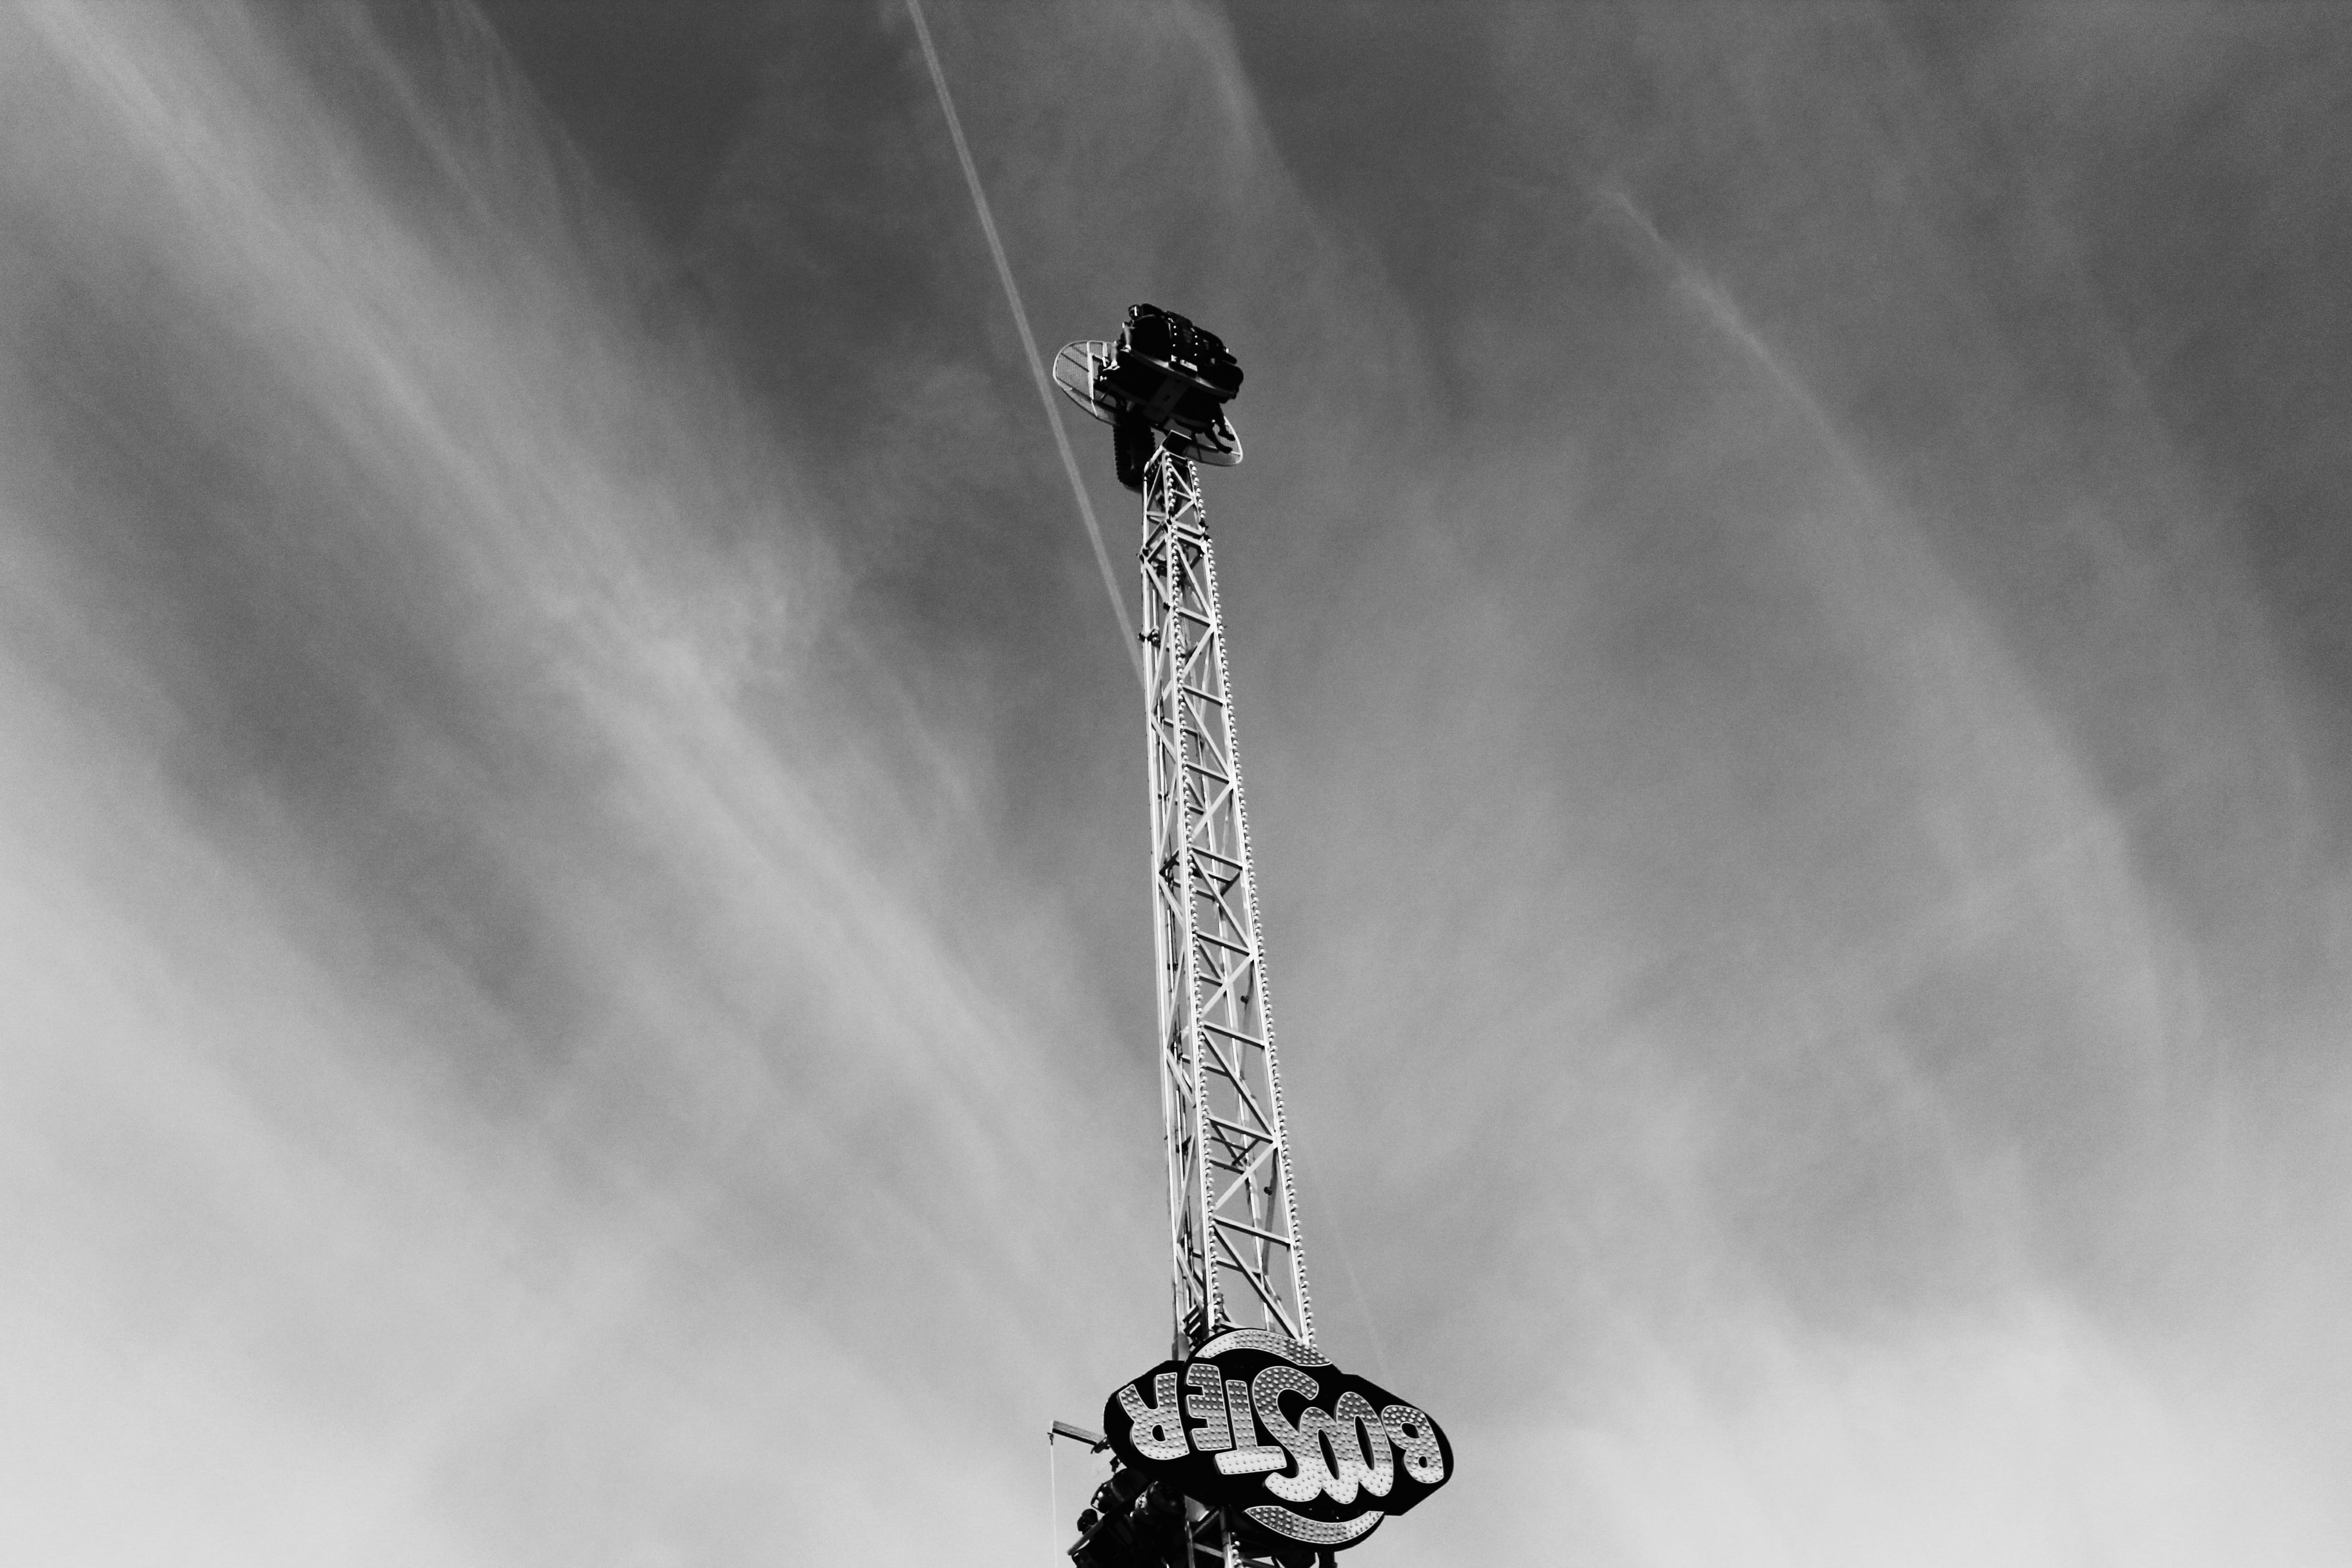 Grayscale Photography of Booster Crane